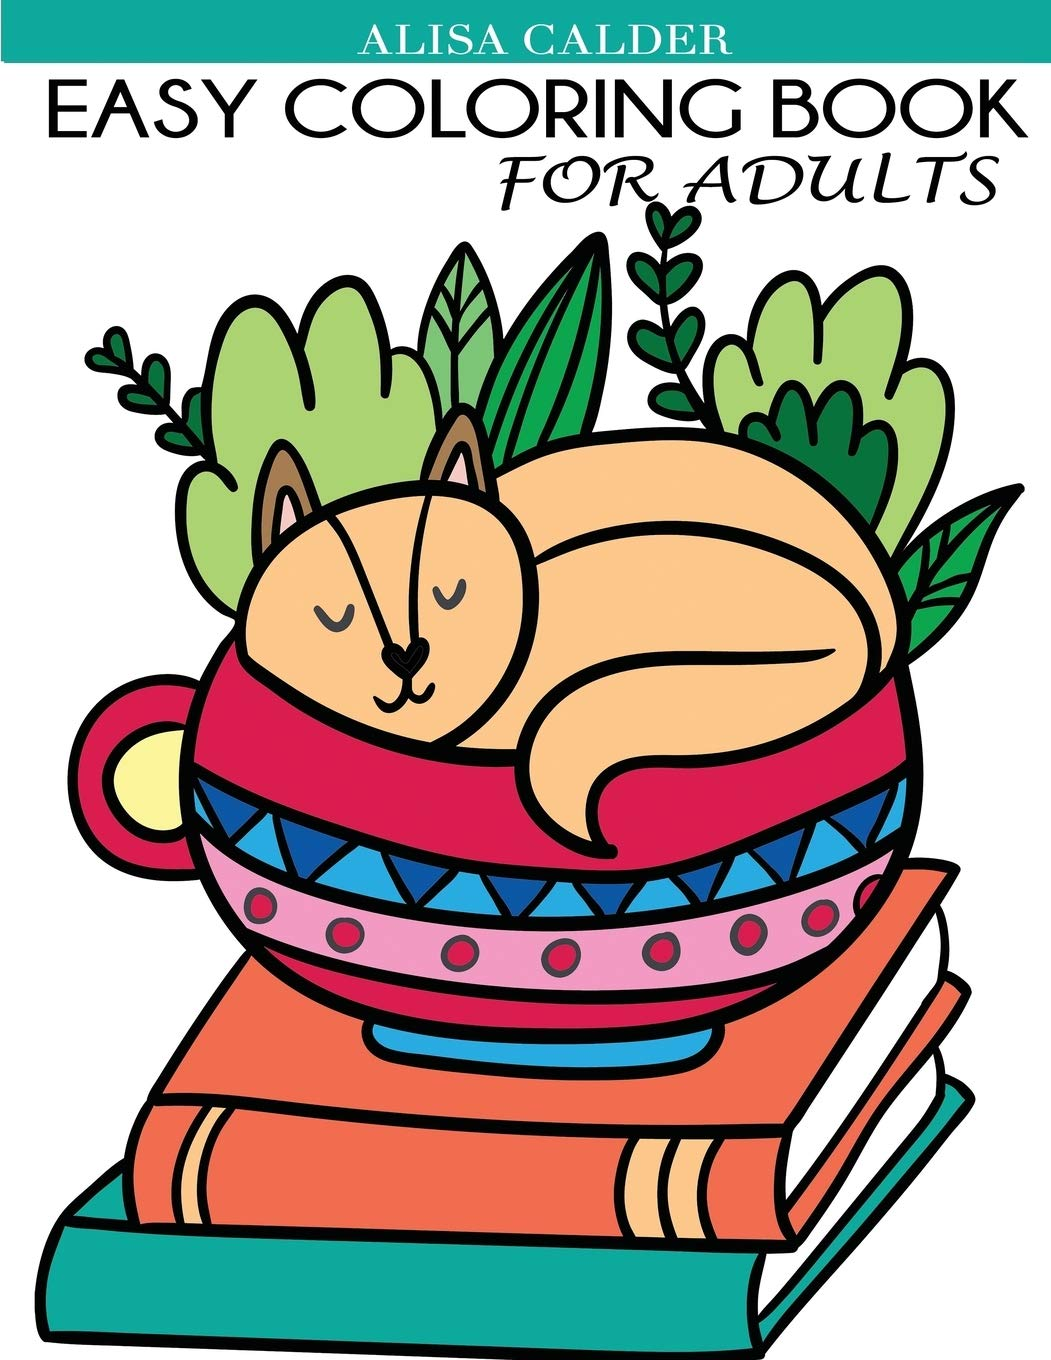 Easy Coloring Book For Adults Beautiful Simple Designs For Seniors And Beginners Easy Adult Coloring Books Calder Alisa 9781947243750 Amazon Com Books